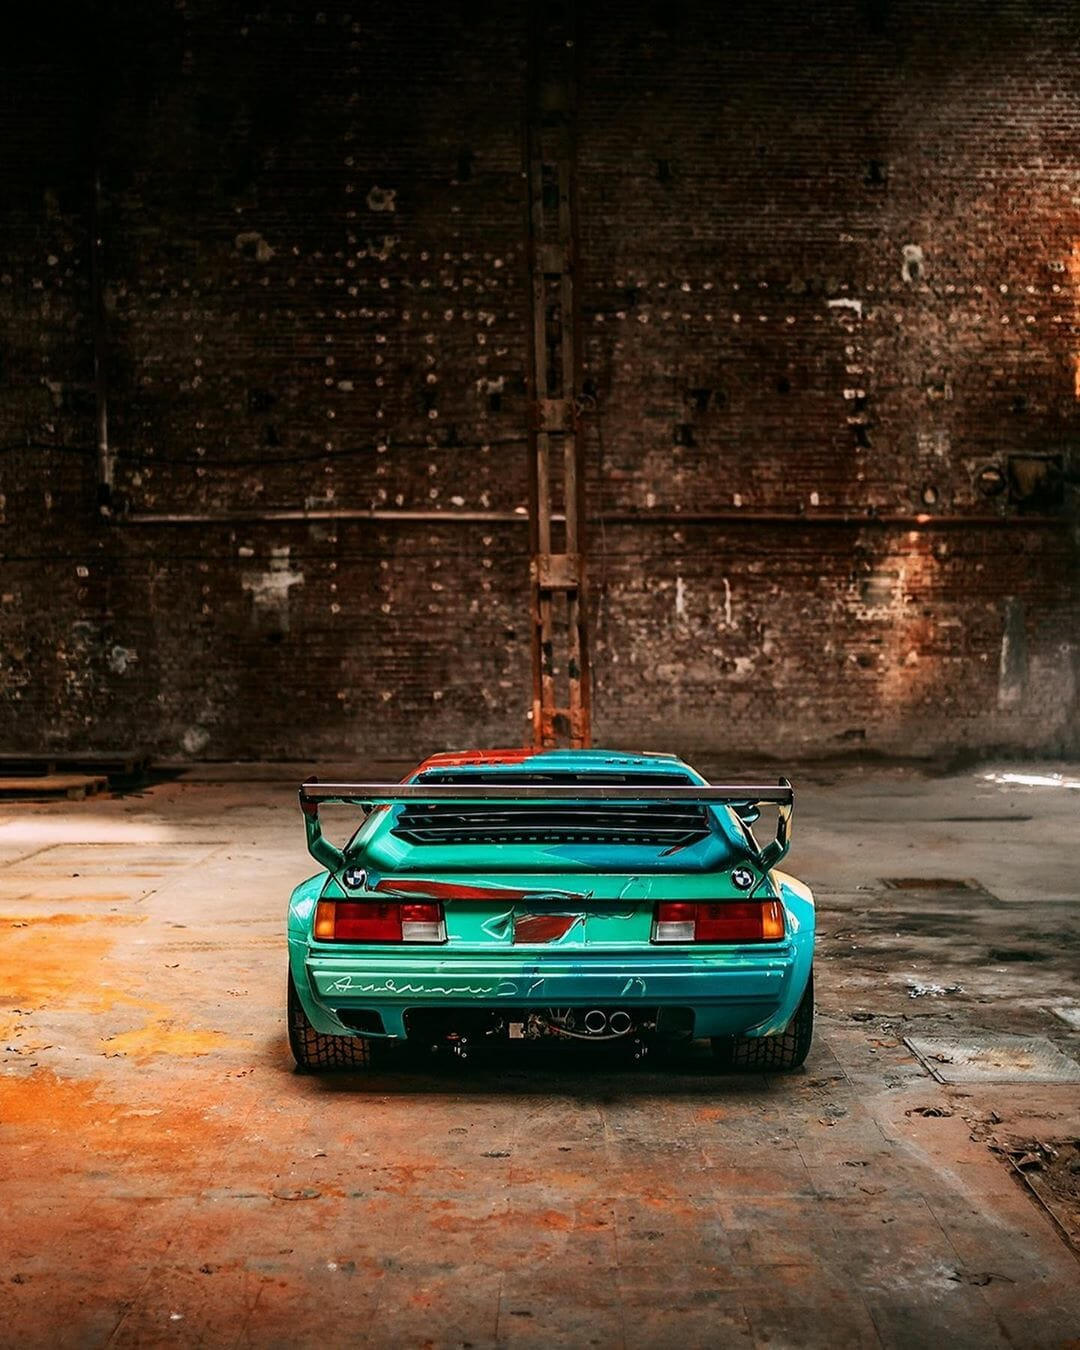 BMW M1 by Andy Warhol - BMW Art Cars - Picture 2 by Stephan Bauer